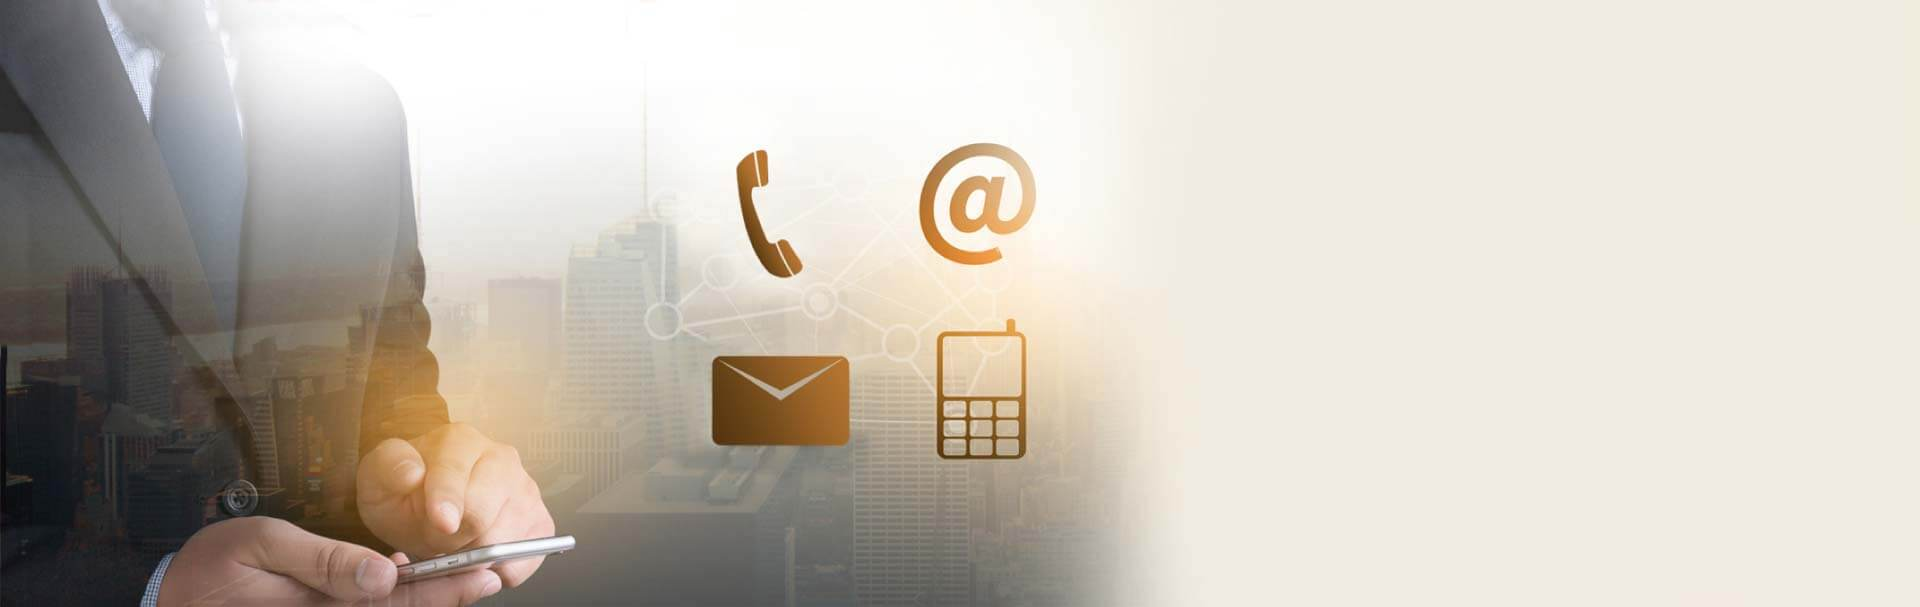 hight resolution of contact us for any support or request a quote techloyce 42 1 contact us